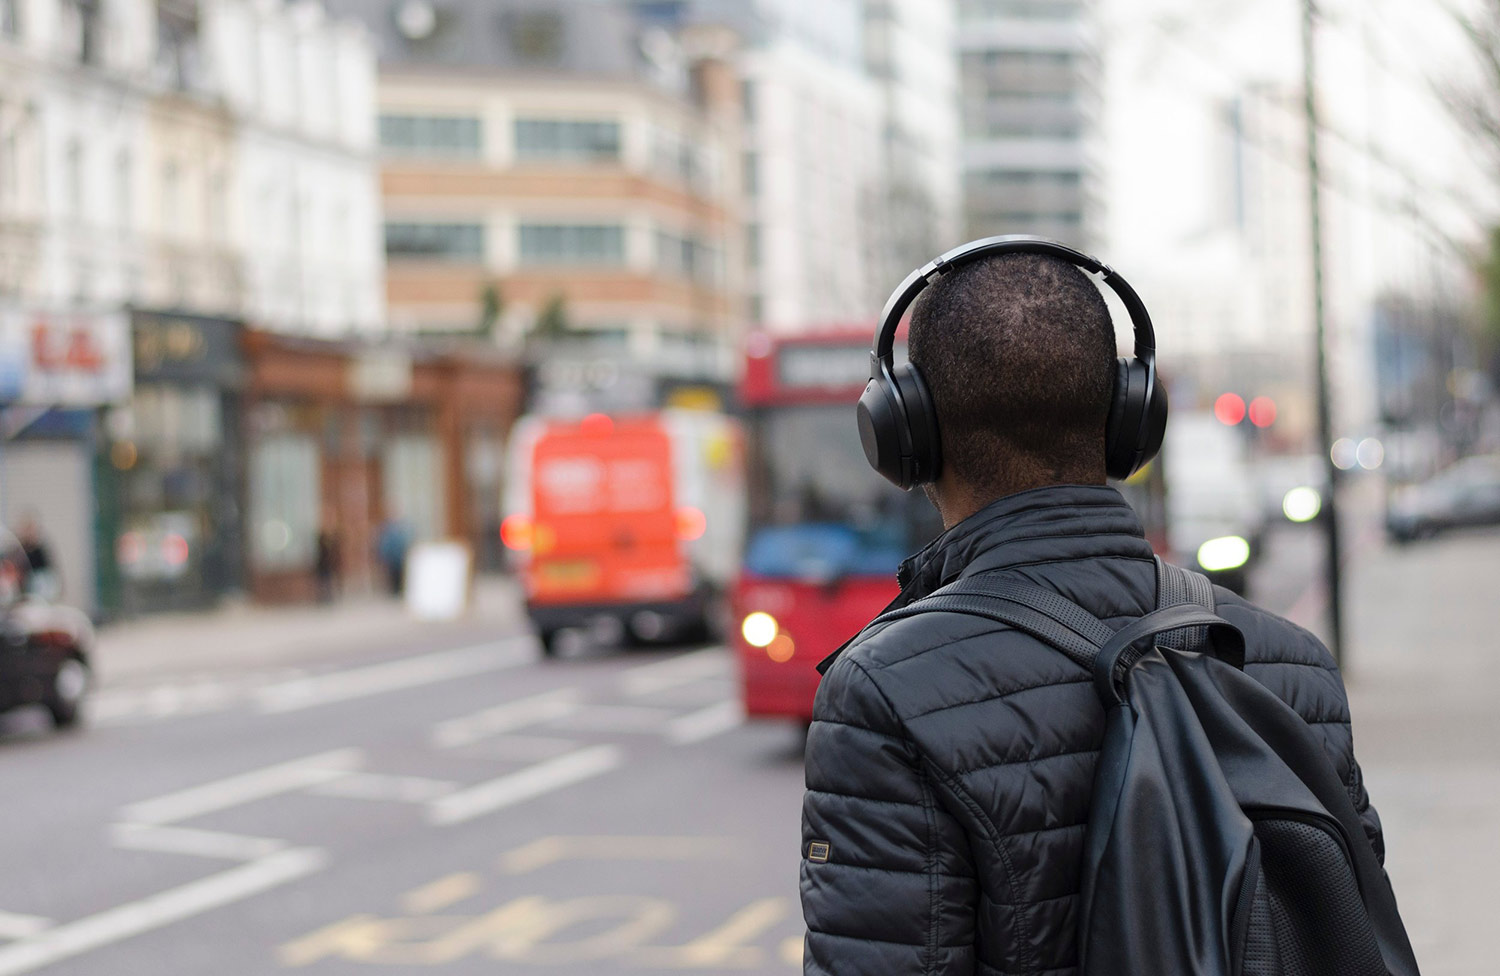 man-walking-with-headphones